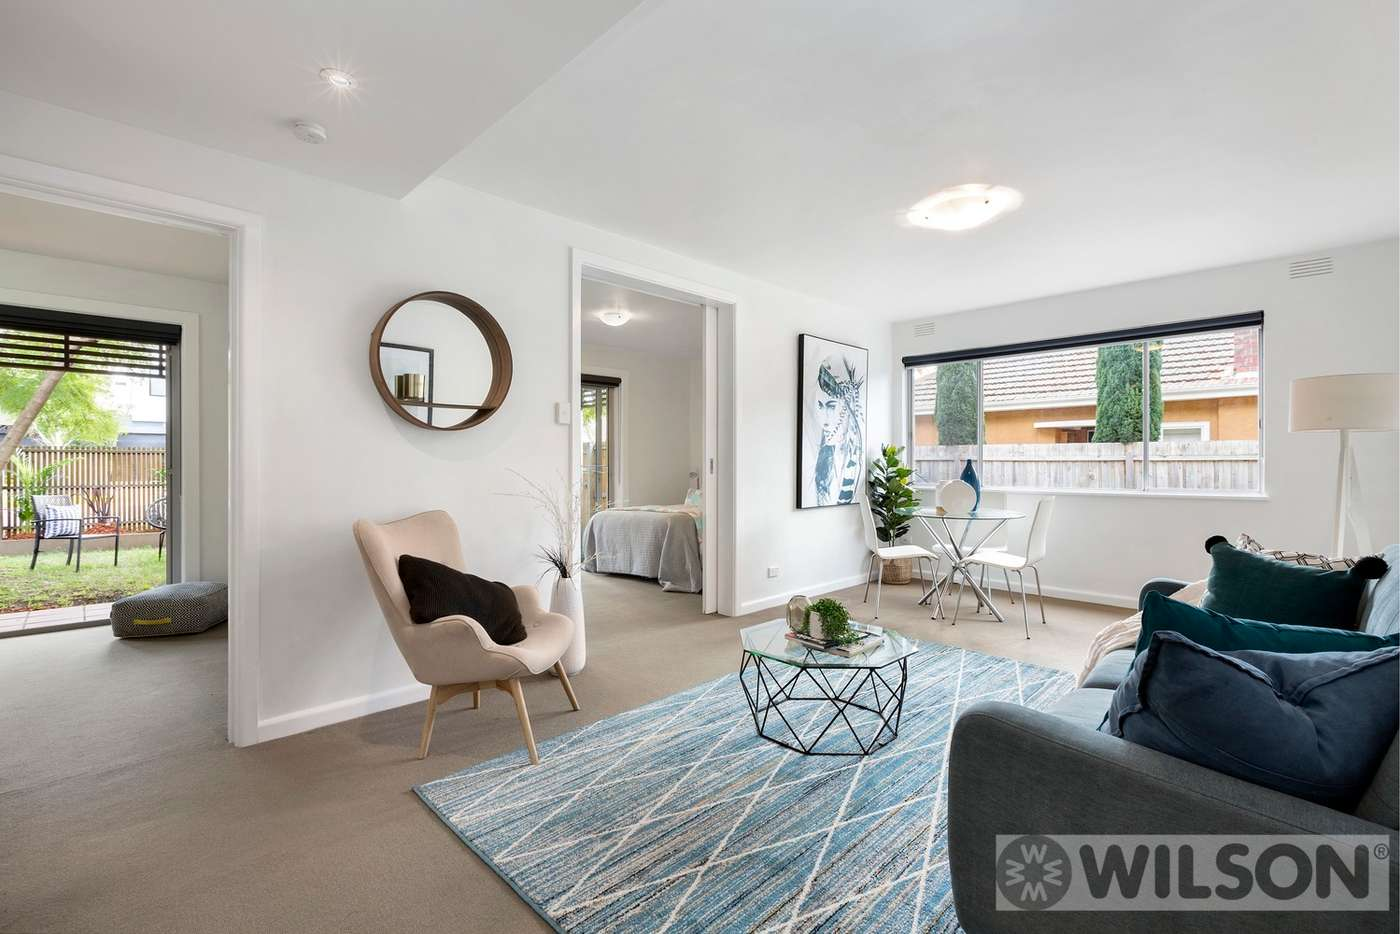 Fifth view of Homely apartment listing, 1/21 Thanet Street, Malvern VIC 3144